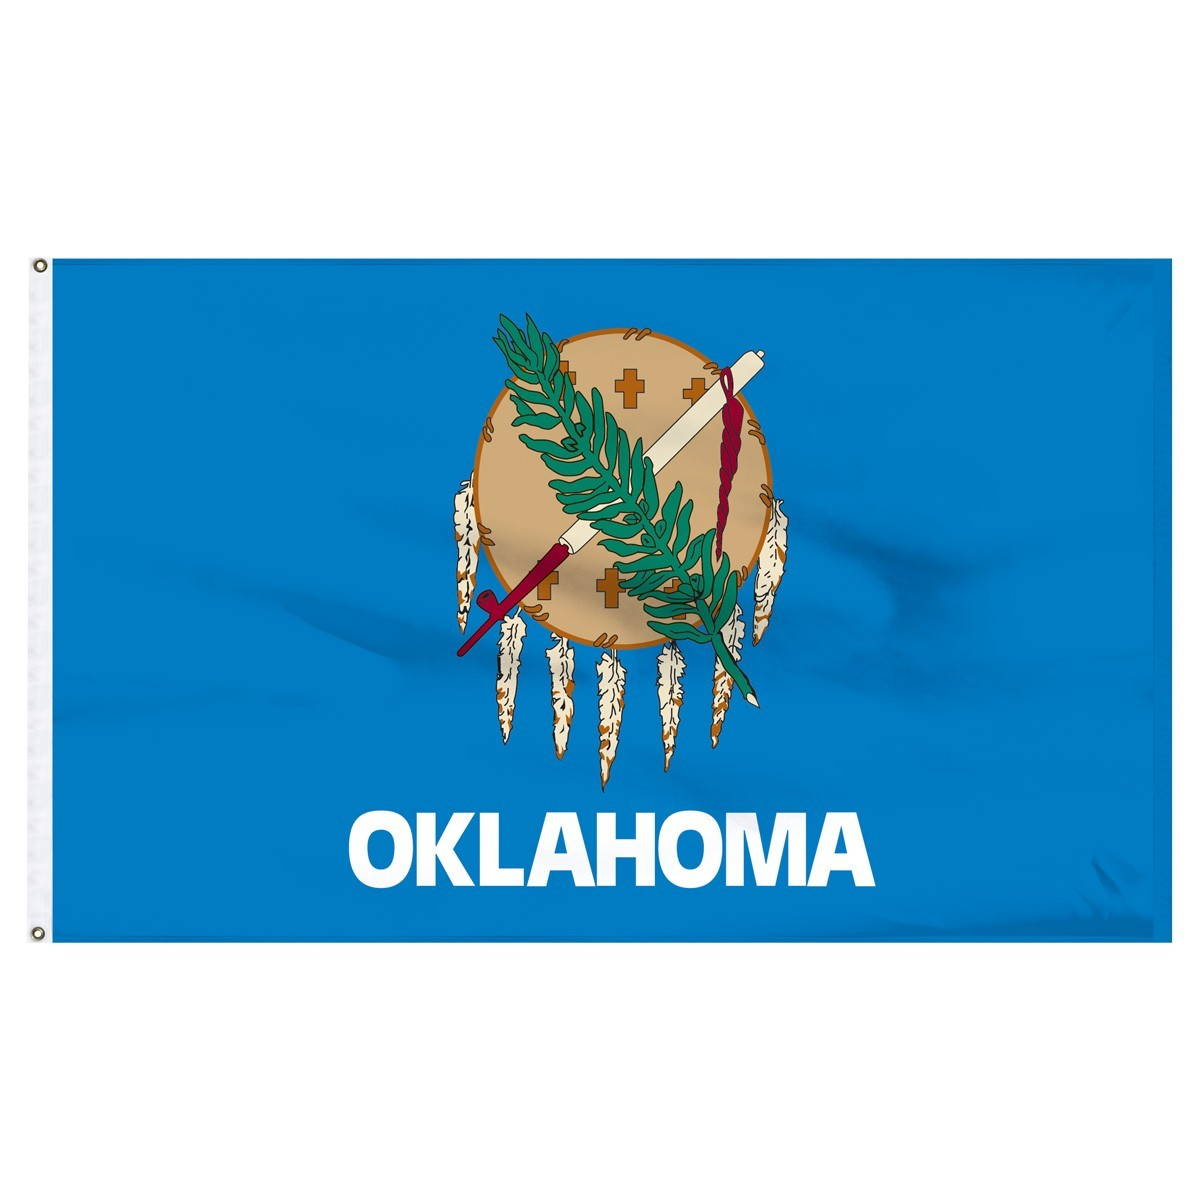 Oklahoma  3' x 5' Outdoor Nylon Flag